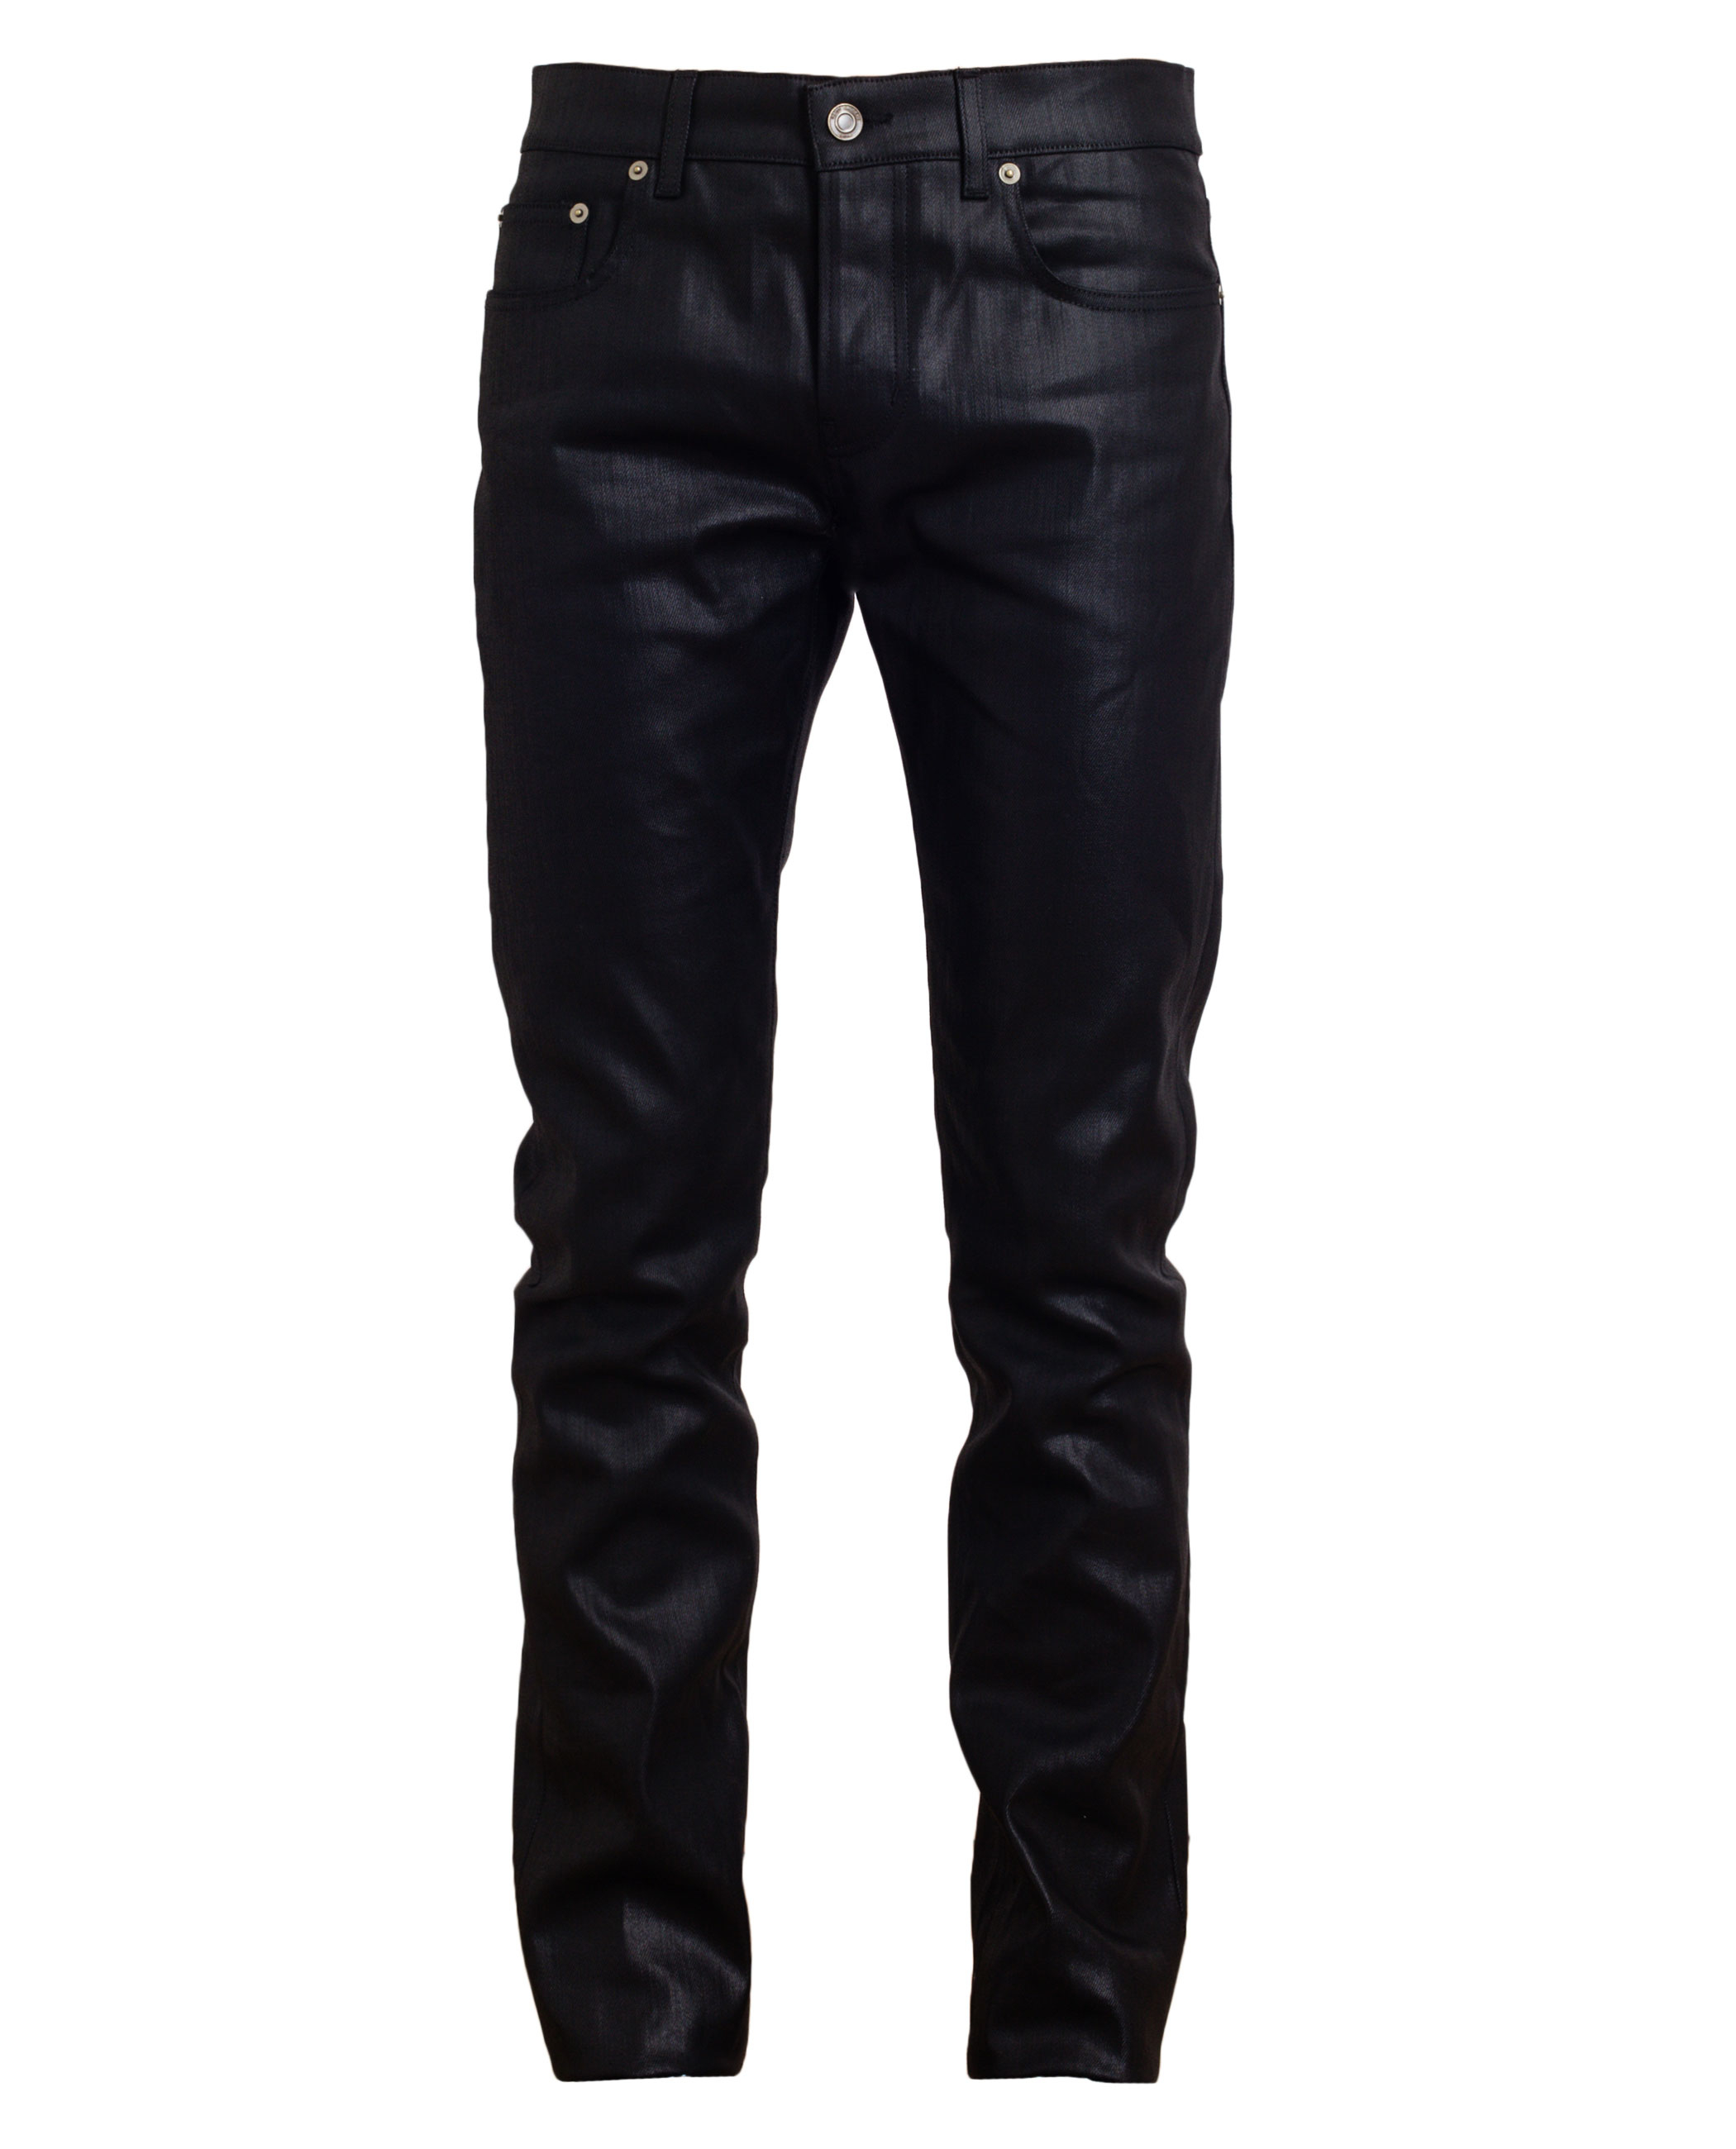 saint laurent coated denim jeans in black for men lyst. Black Bedroom Furniture Sets. Home Design Ideas